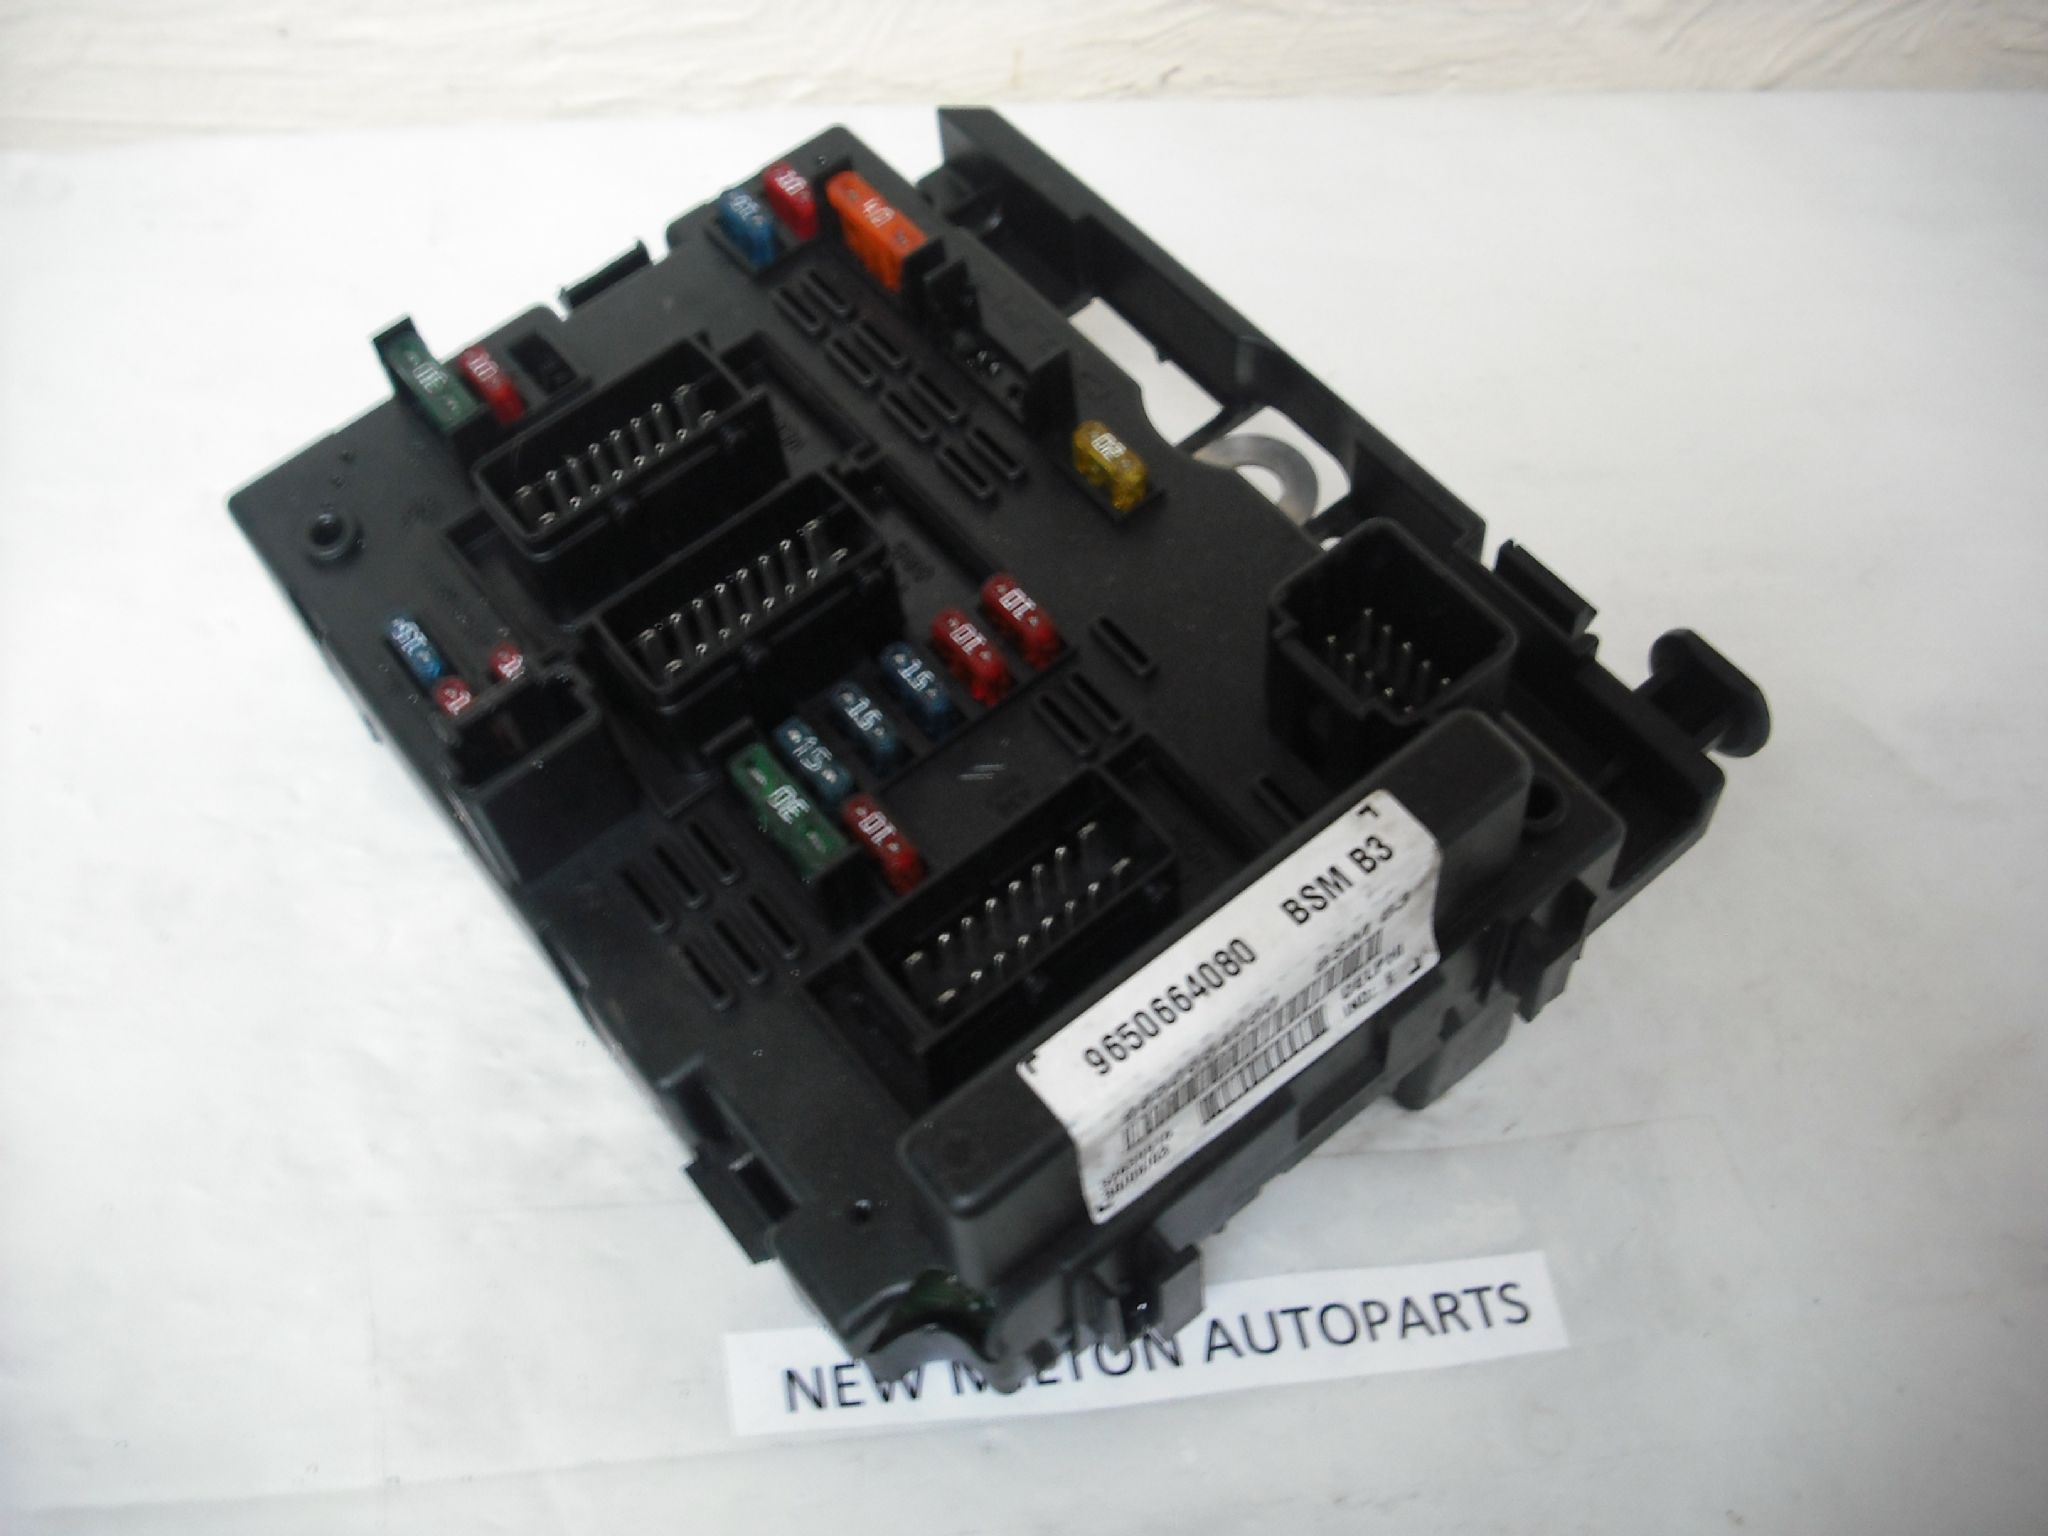 sorry out of stock ................. citroen c8 peugeot 807 fuse box controller 9650664080 bsm b3 delphi 6197 p sorry out of stock citroen c8 peugeot 807 fuse citroen c8 fuse box locations at gsmx.co